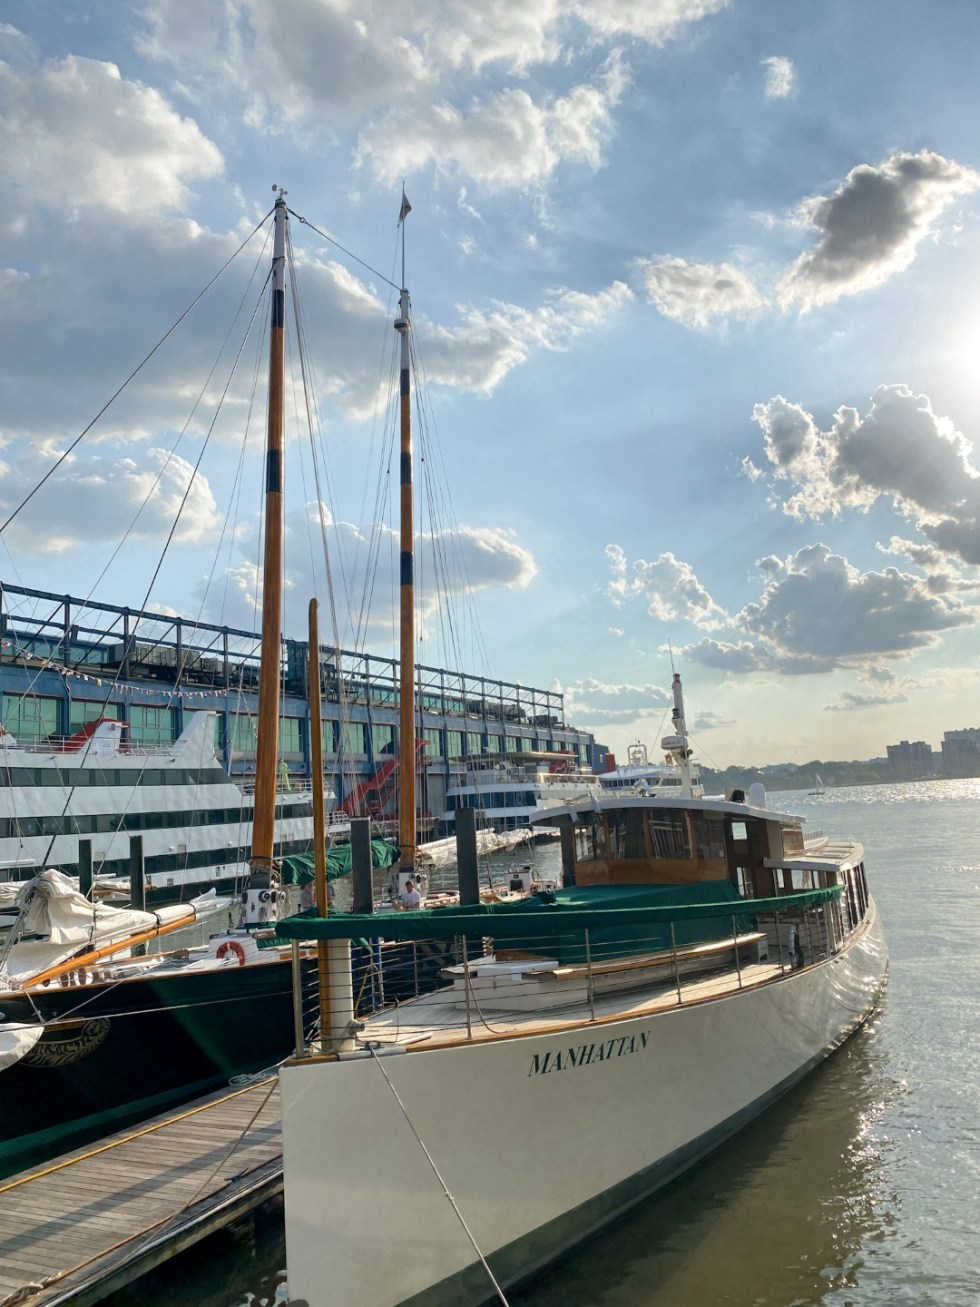 NYC Summer Weekend: Things to Do in NYC in the Summer - I'm Fixin' To - @imfixintoblog   NYC Summer Weekend by popular NC travel blog, I'm Fixin' To: image of the Manhattan sailboat.